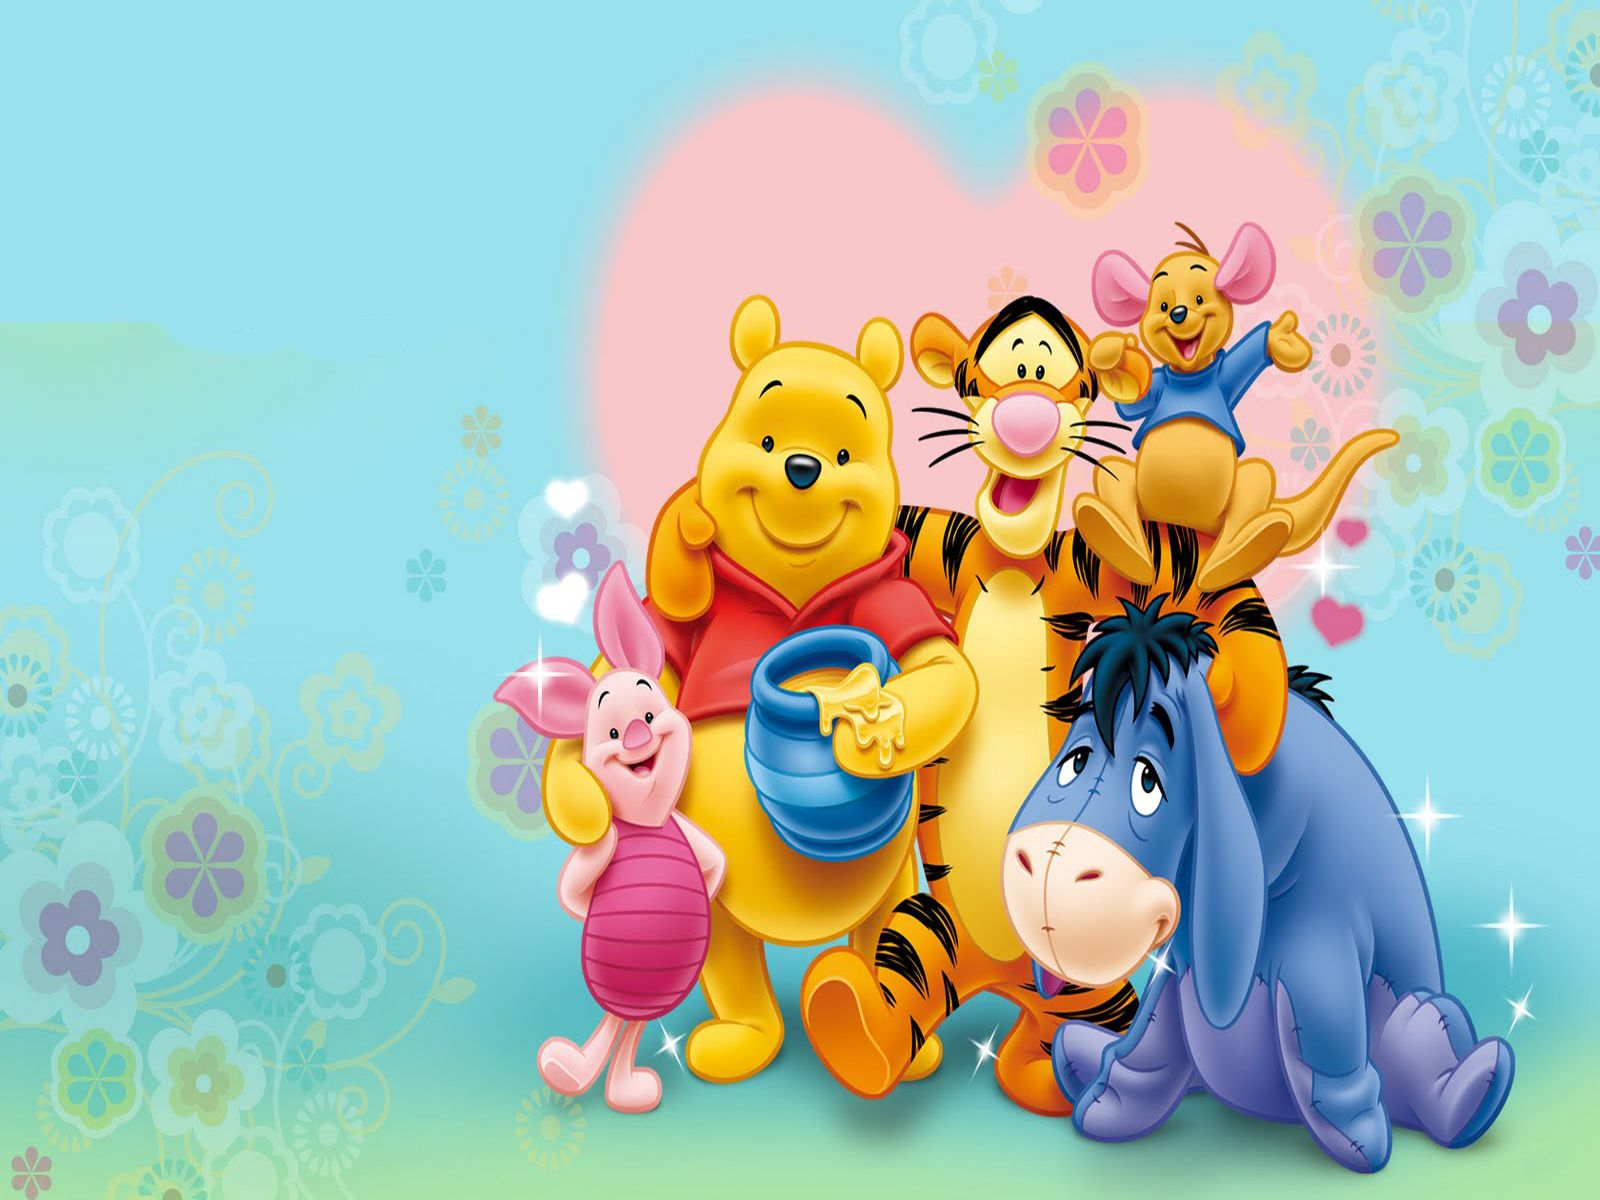 Pin free winnie the pooh download for kids wallpapers on pinterest pin free winnie the pooh download for kids wallpapers on pinterest voltagebd Gallery